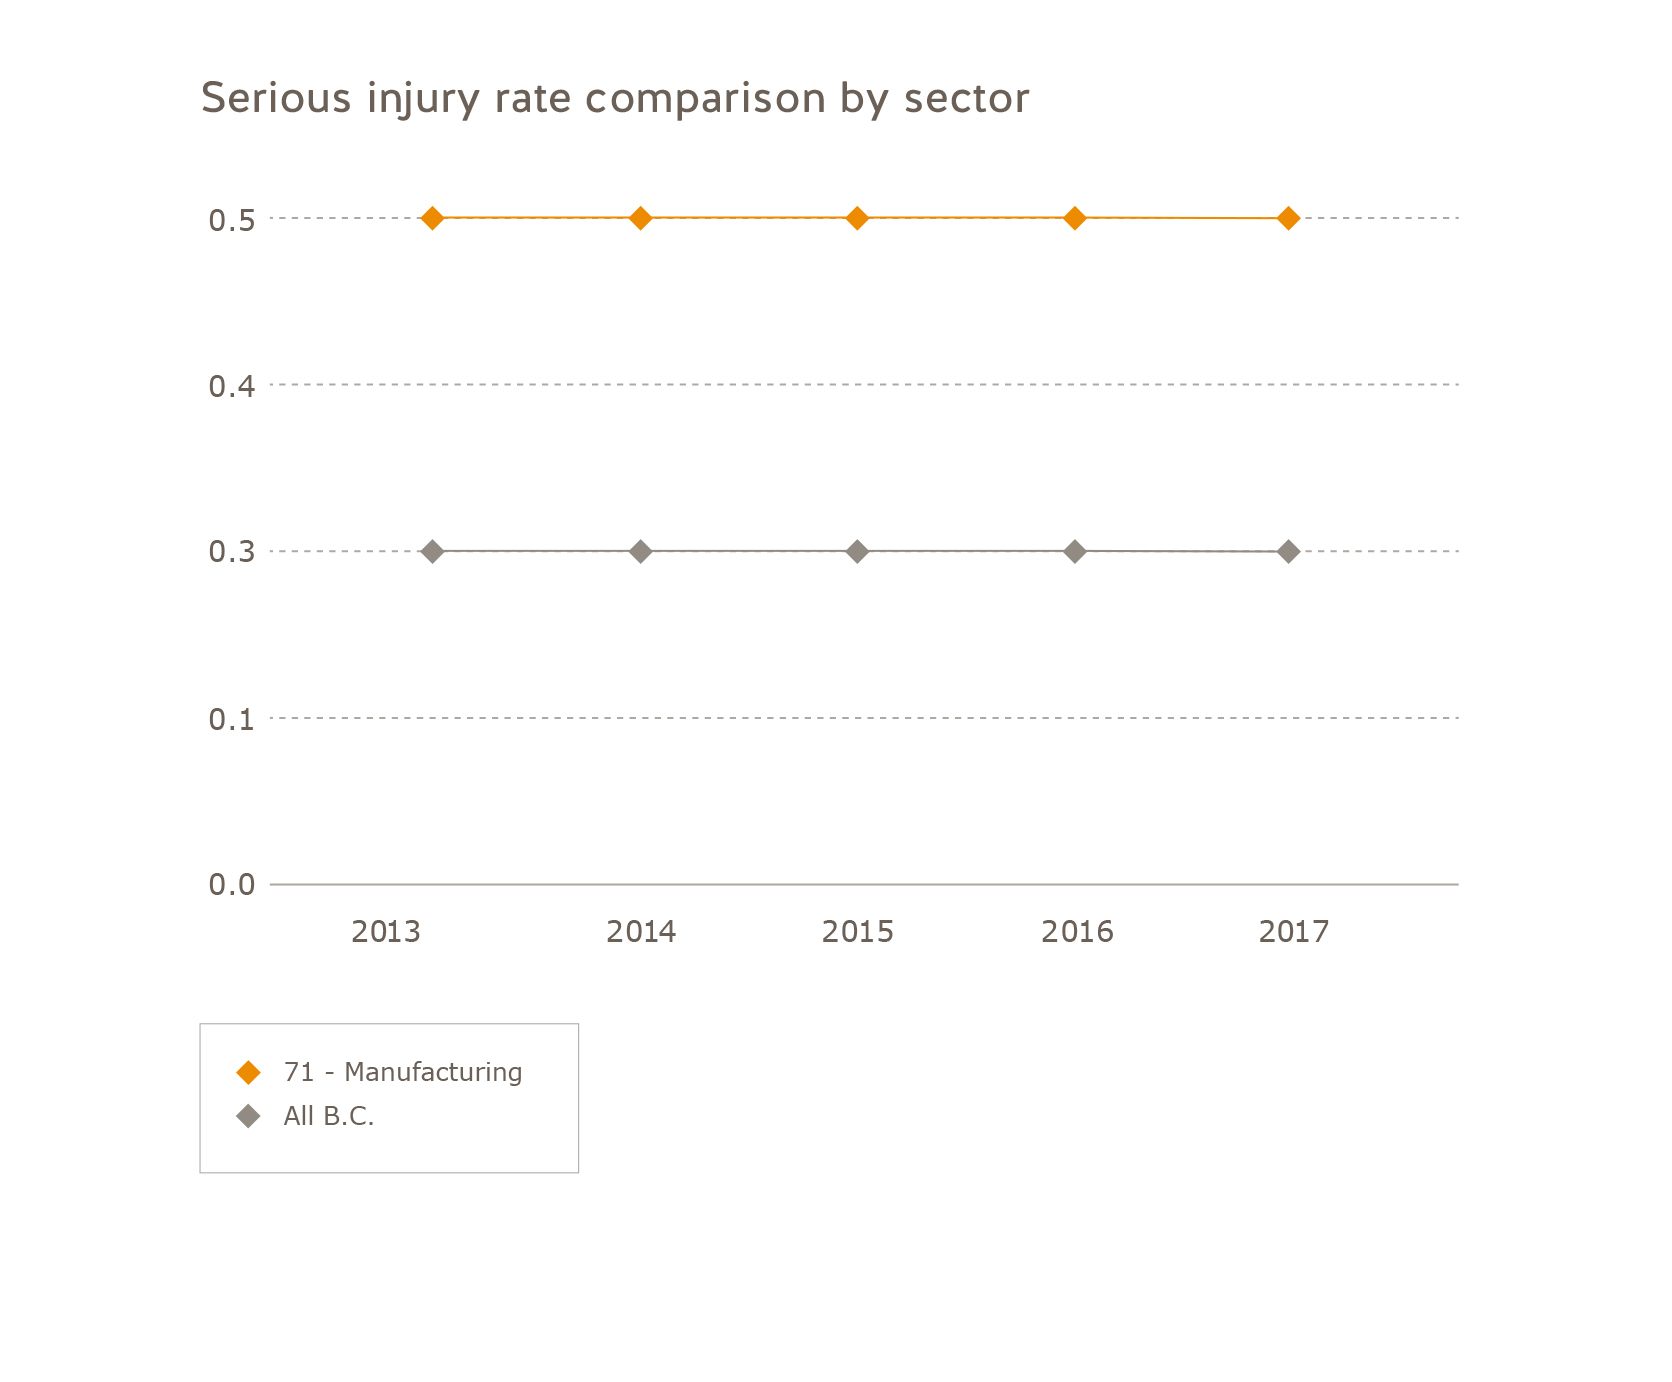 Serious injury rate comparison manufacturing sector 2013 to 2017. Manufacturing: 2013 = 0.5, 2014 = 0.5, 2015 = 0.5, 2016 = 0.5, 2017 = 0.5. All of B.C.: 2013 = 0.3, 2014 = 0.3, 2015 = 0.3, 2016 = 0.3, 2017 = 0.3.